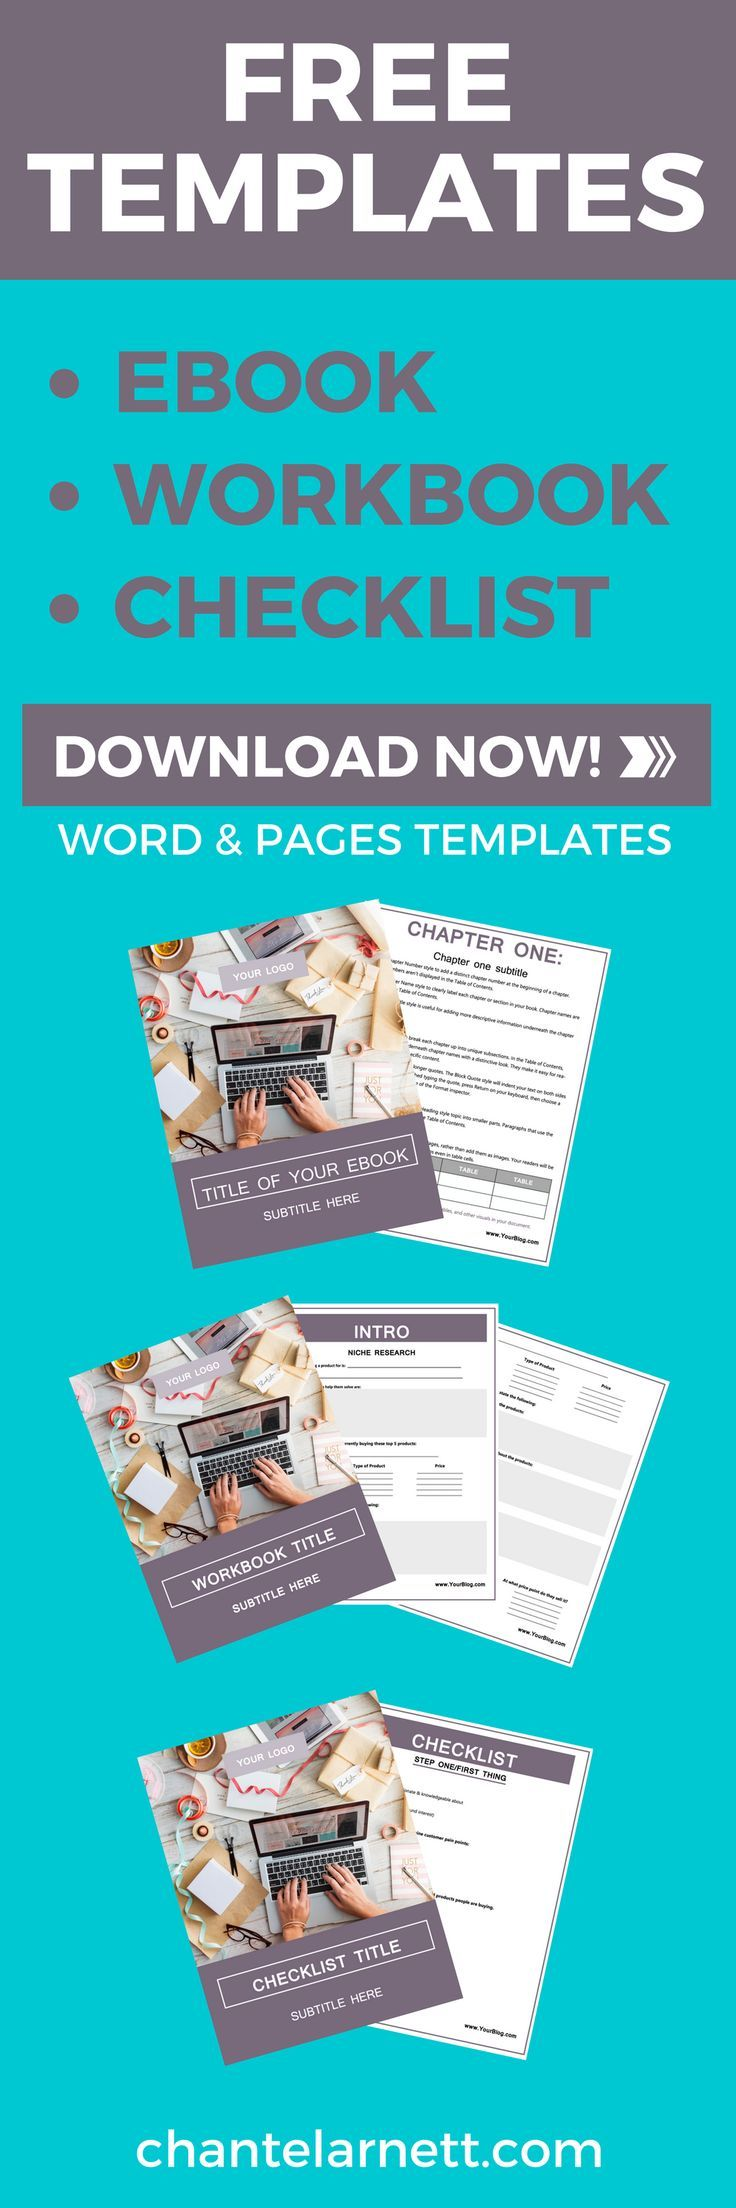 FREE EDITABLE TEMPLATES! Have you always wanted to create your own  checklists, eBooks,